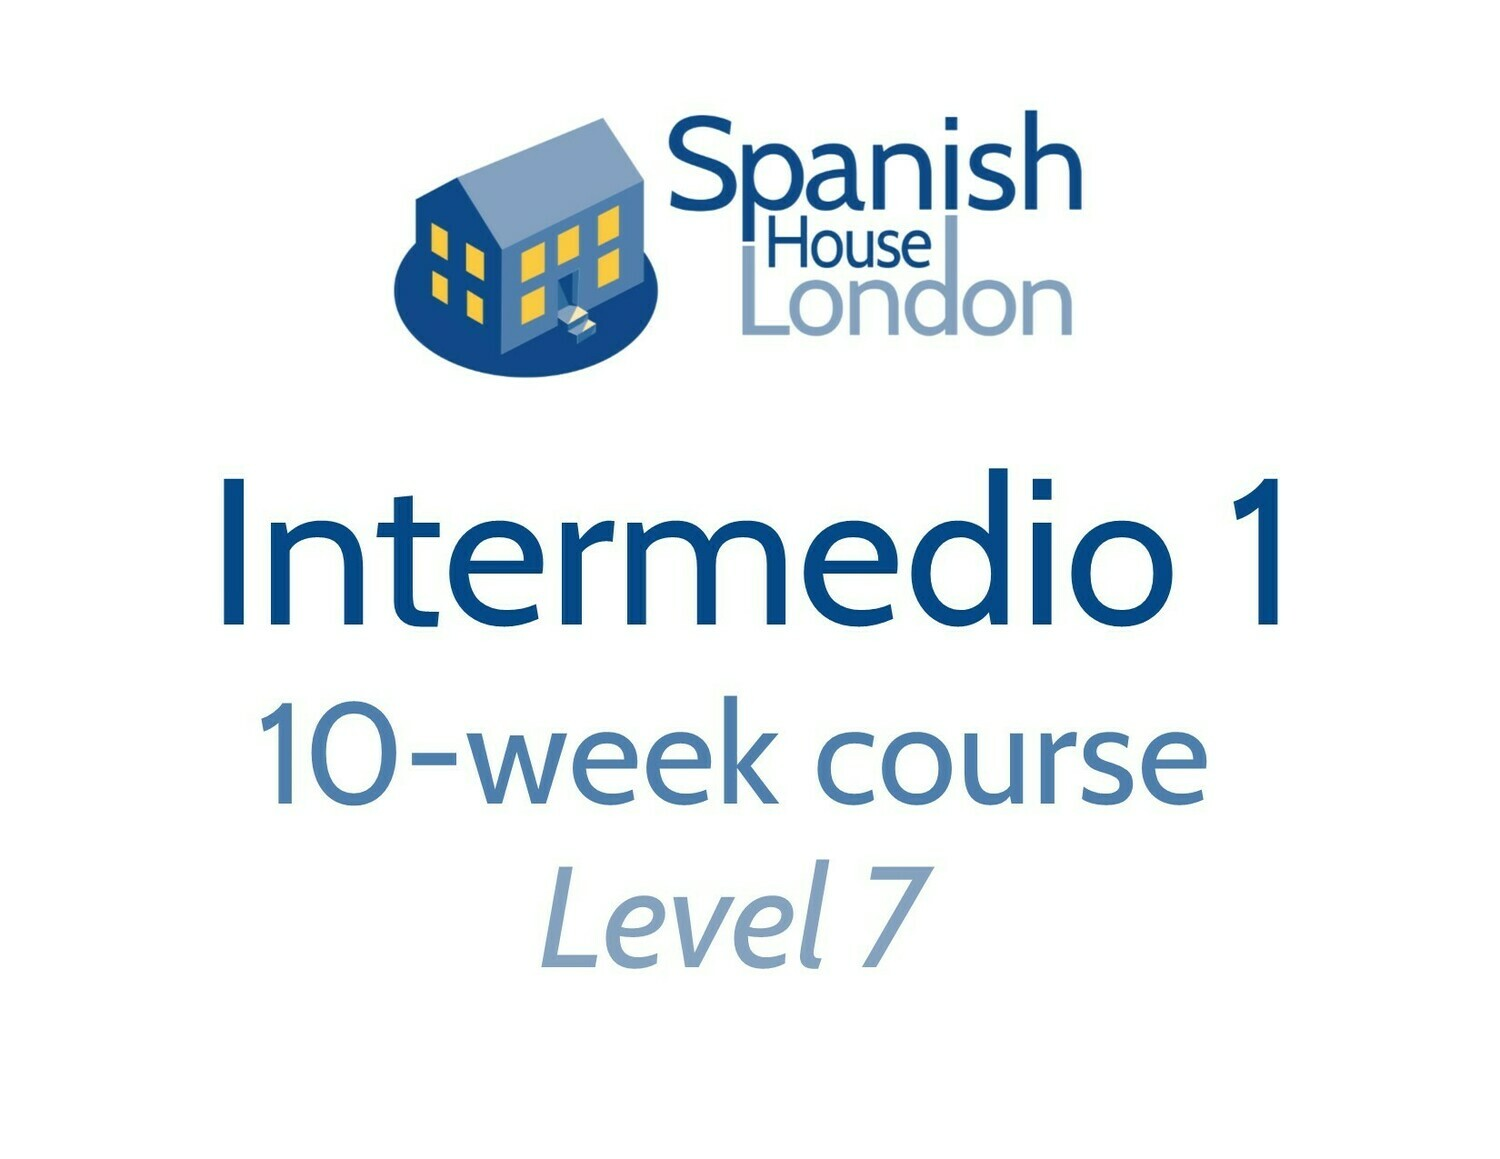 Intermedio 1 Course starting on 5th August at 7.30pm